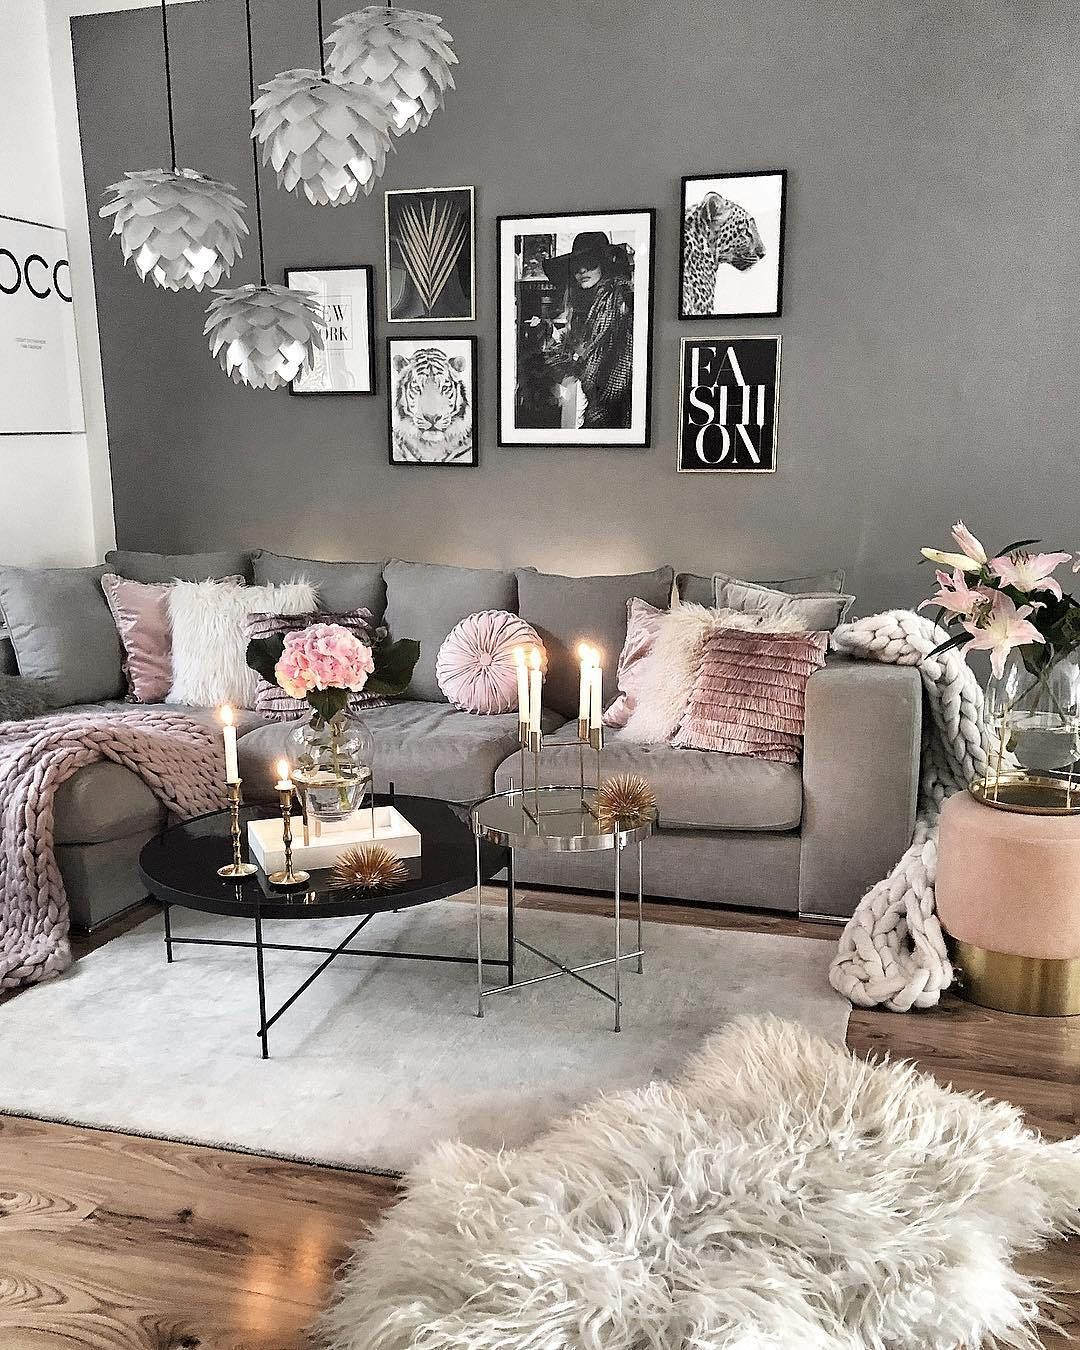 Recreate This Grey And Pink Cozy Living Room Decor Livingroom Decor Living Room Decor Cozy Pink Living Room Luxury Room Decor